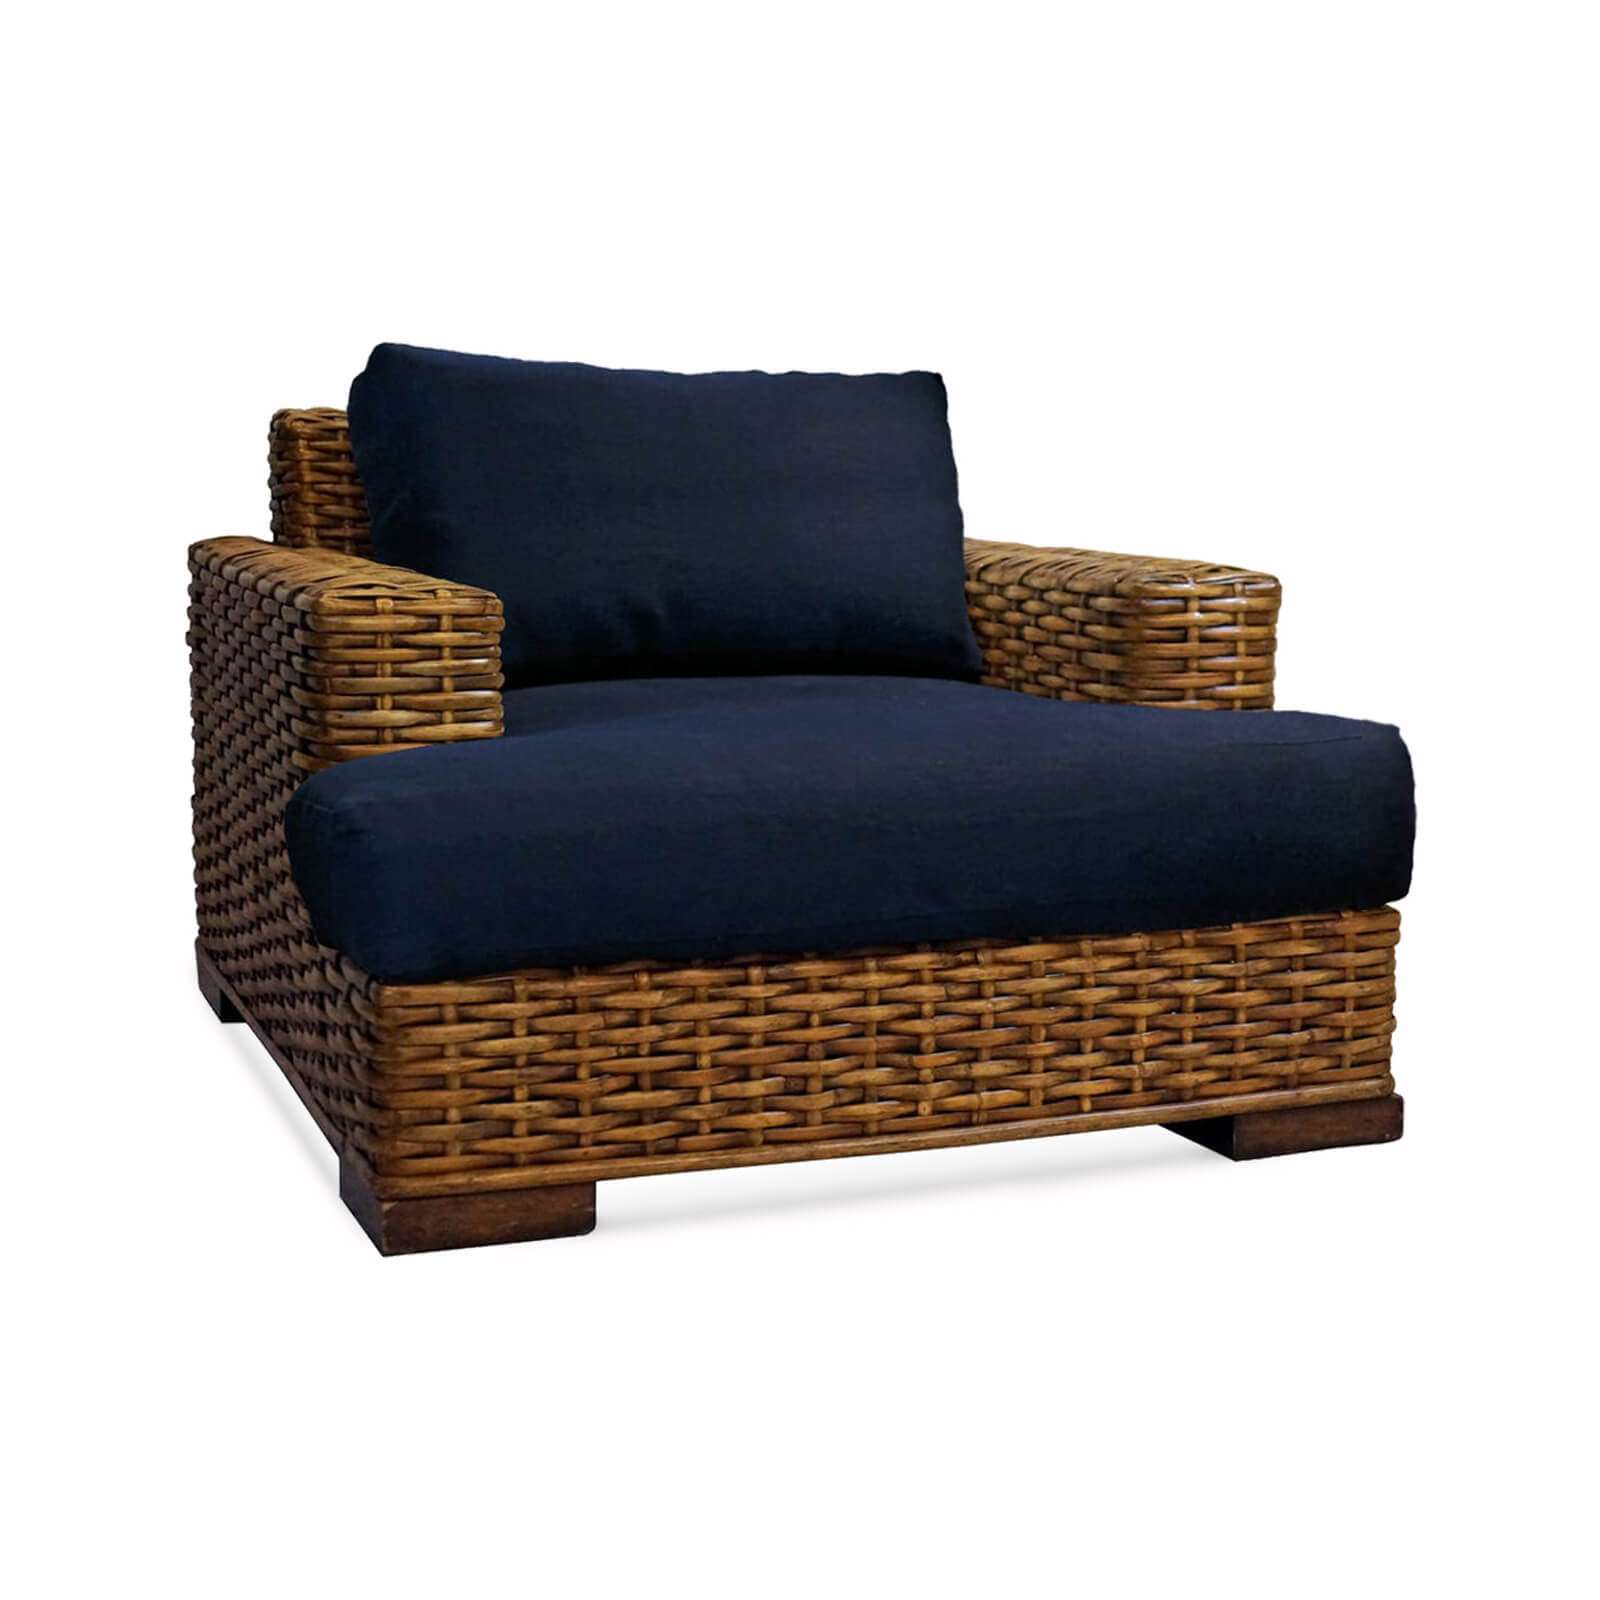 PANAMA CLUB CHAIR 2 - STUART MEMBERY HOME COLLECTION